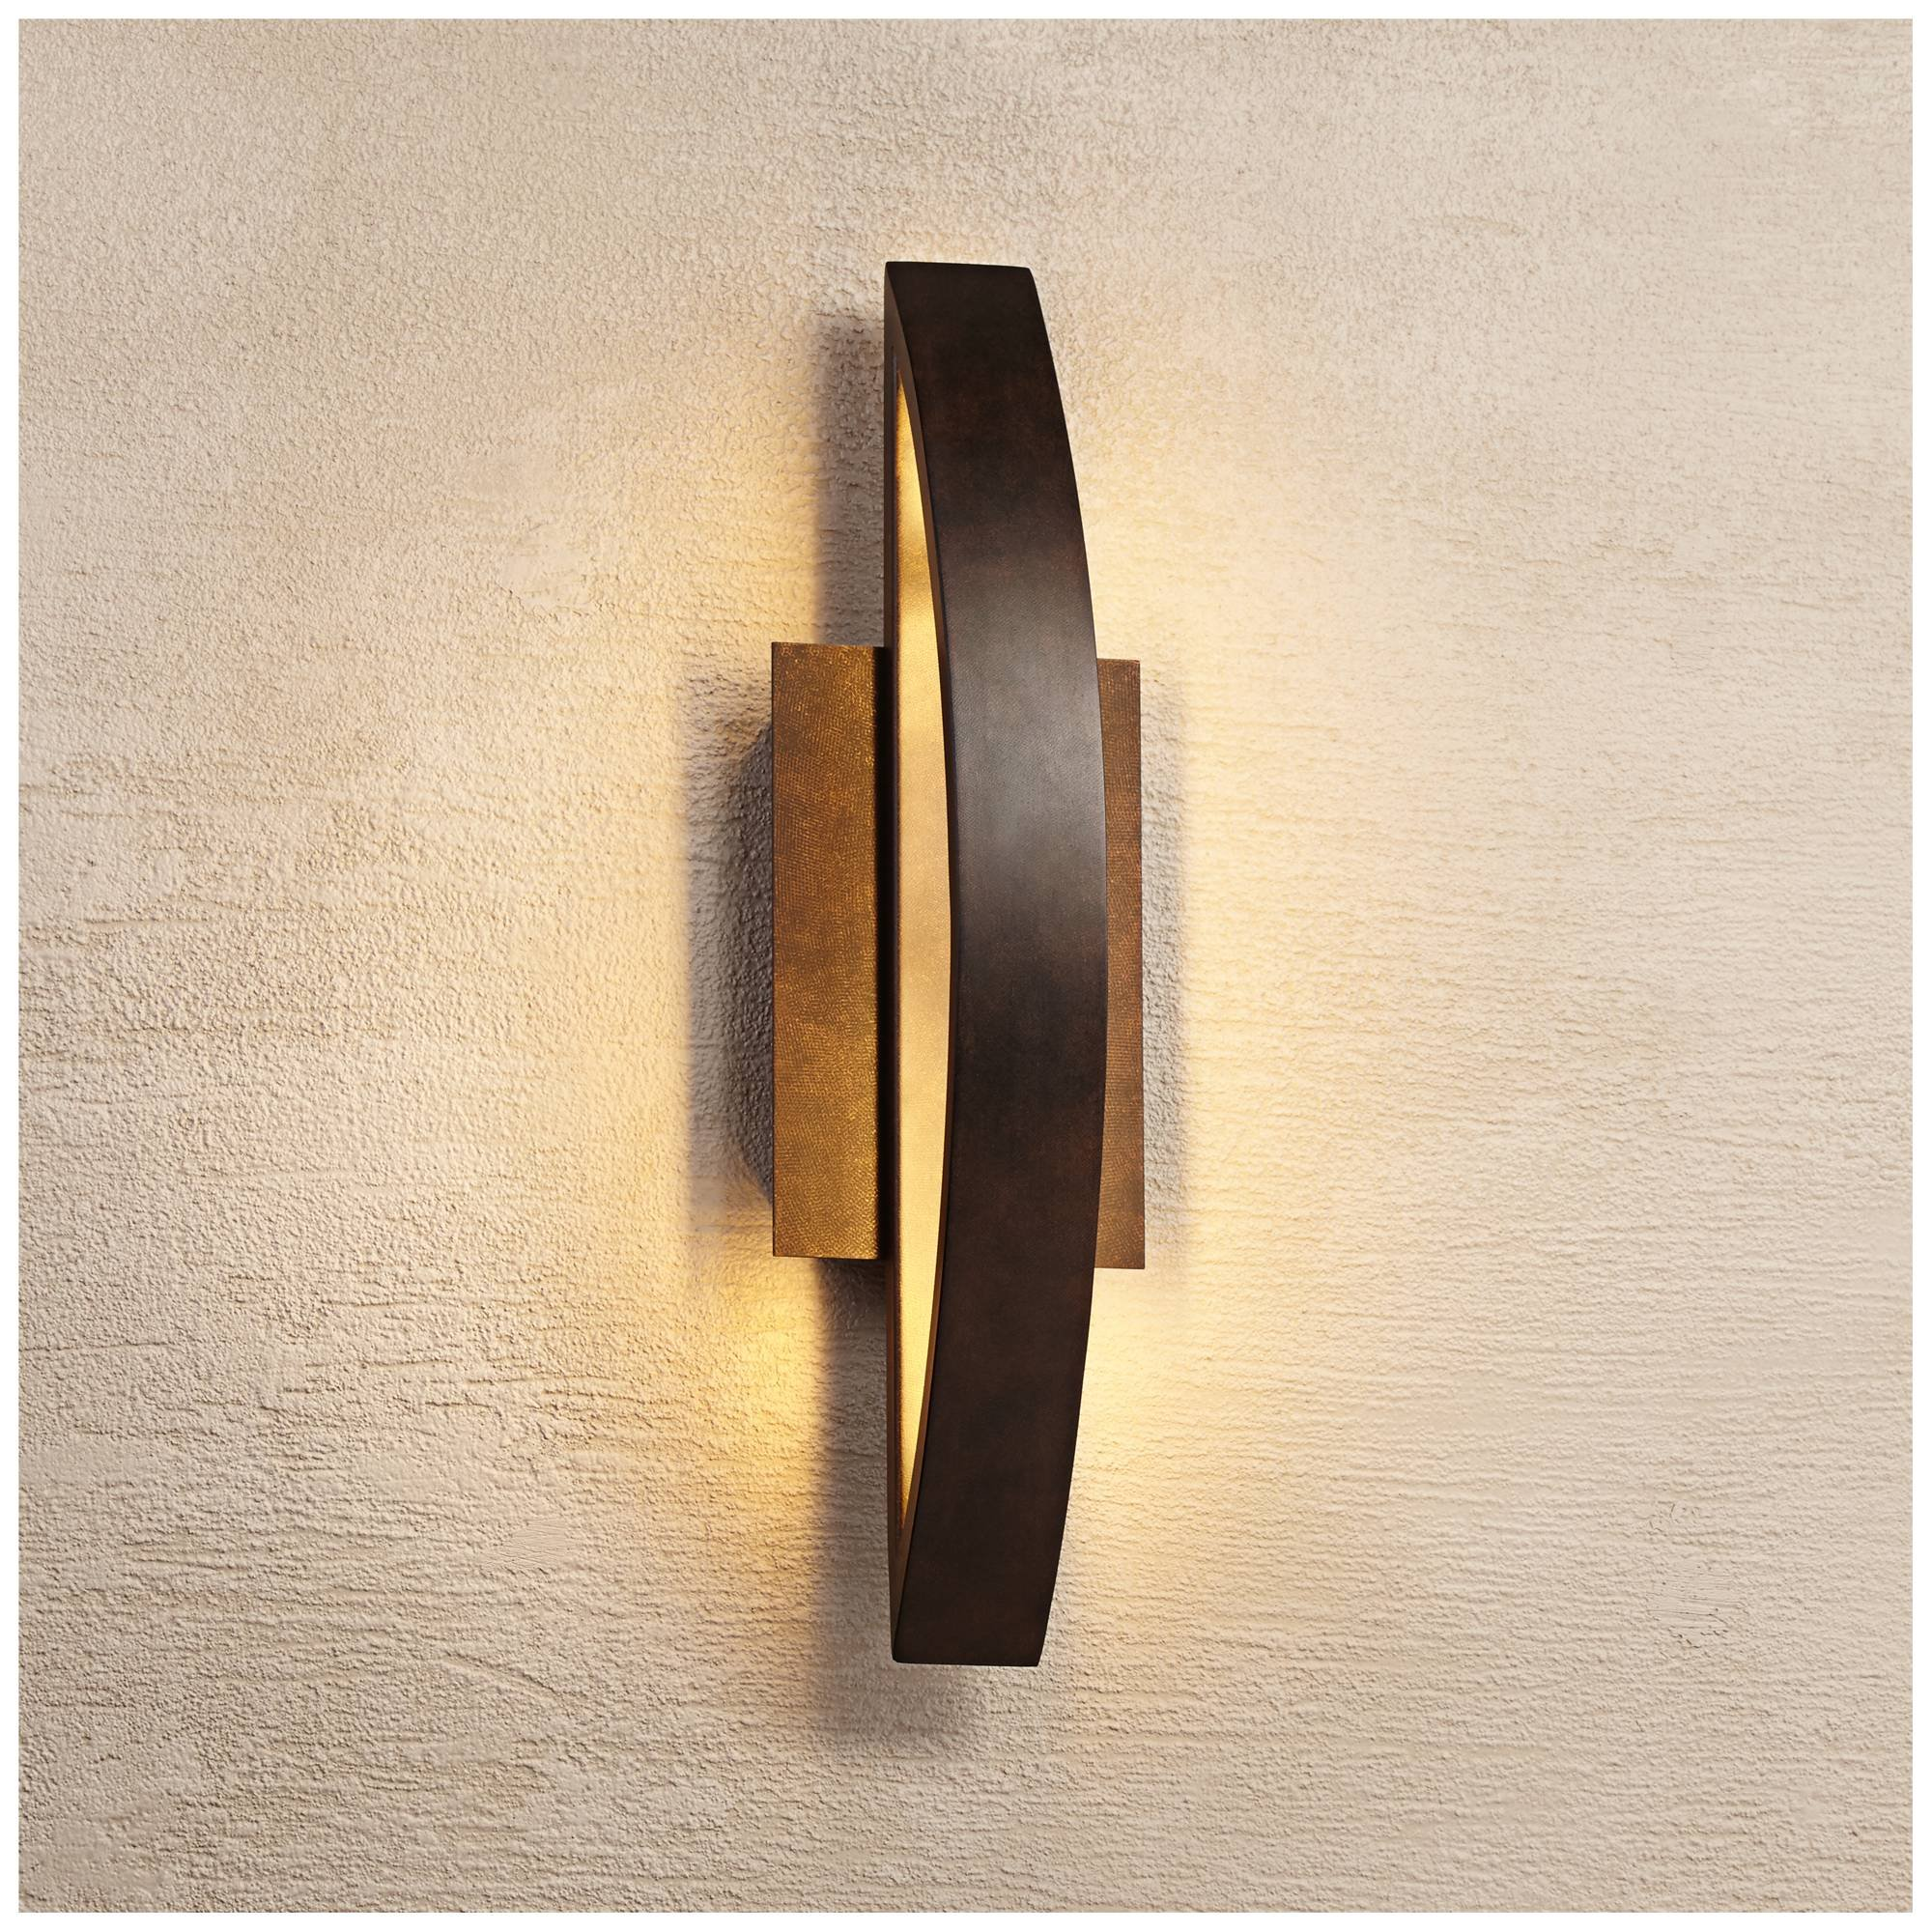 Modern Outdoor Wall Light Fixture LED Coppered Bronze 20 1/2'' Arching Steel Frame for Exterior House Porch Patio Deck - Possini Euro Design